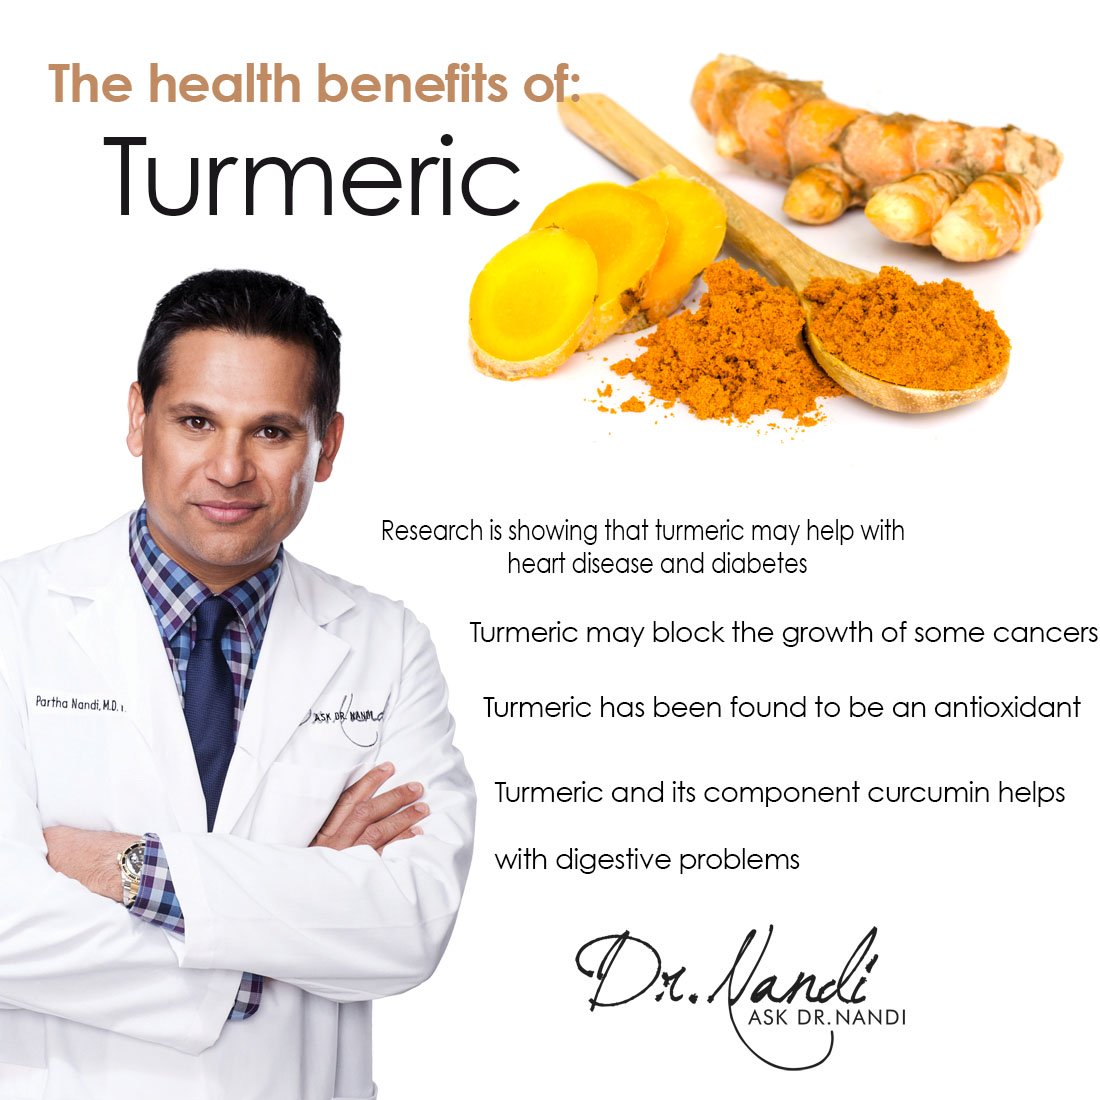 Dr. Nandi on Turmeric